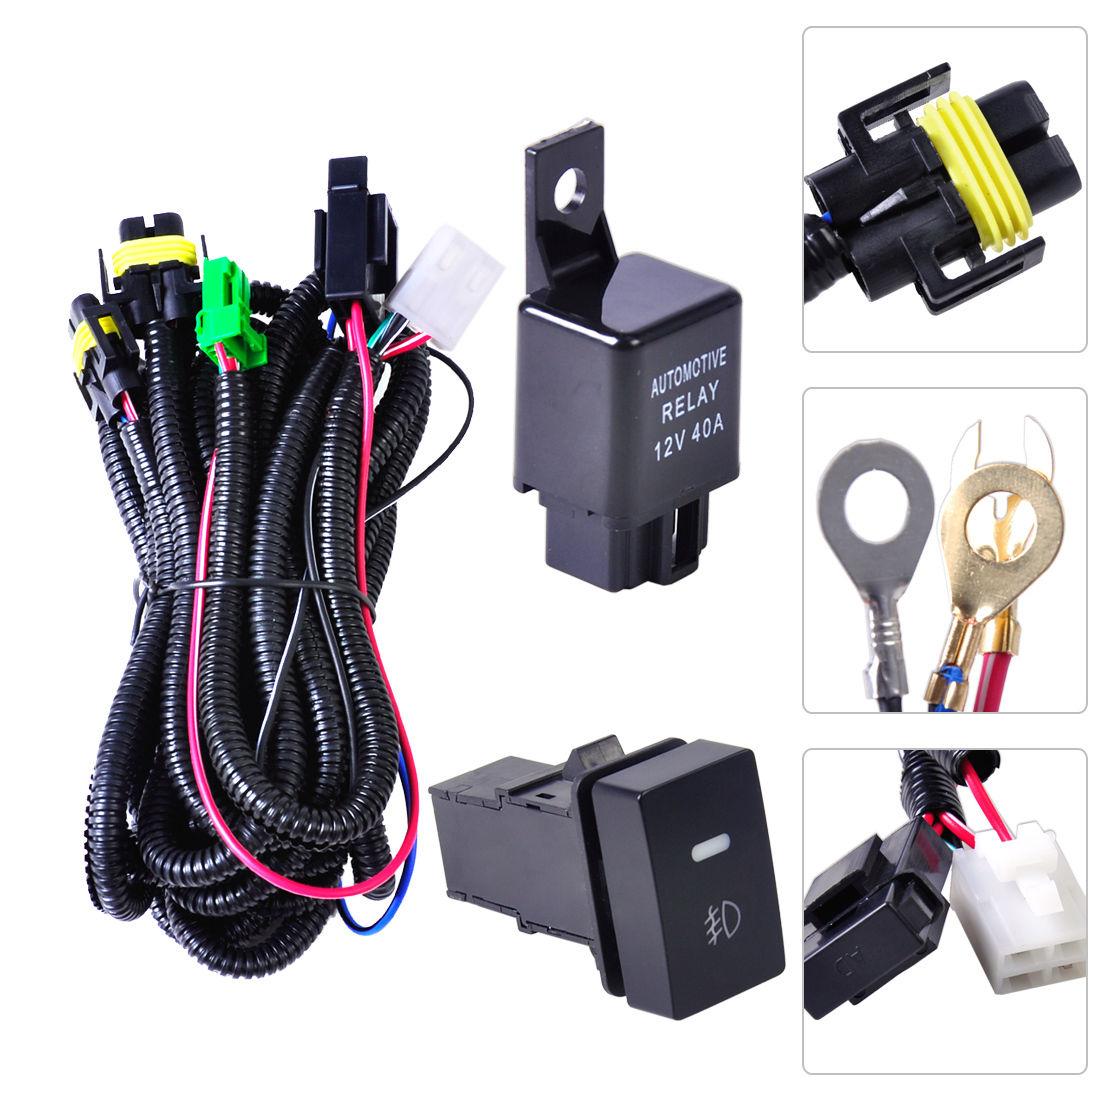 1 Set H11 Fog Light LED Indicators Switch Wiring Harness Kit Loom with  Automotive Relay For - Walmart.com - Walmart.comWalmart